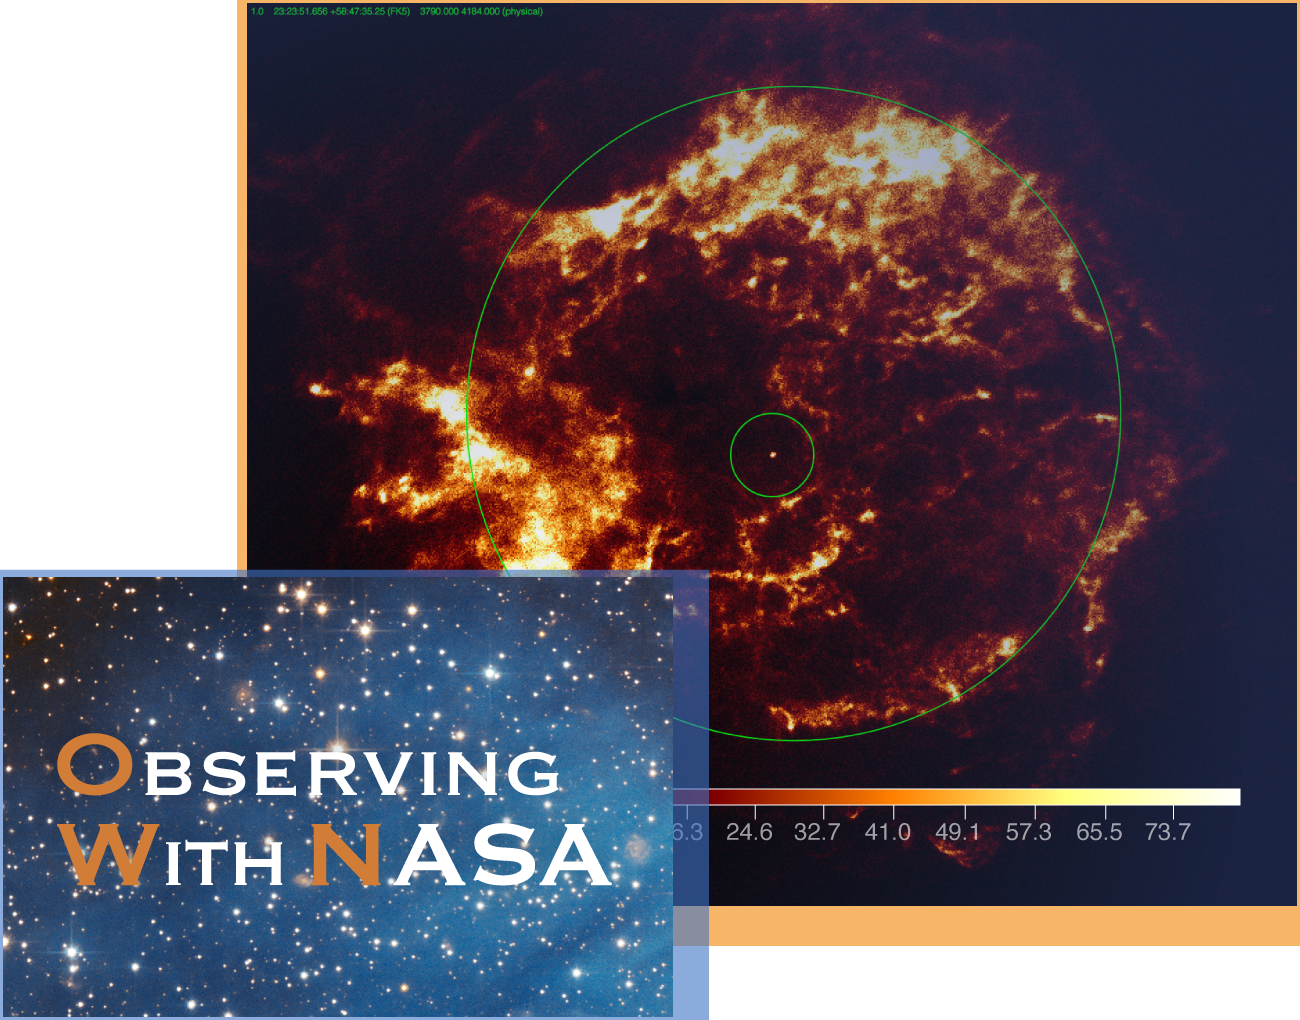 MicroObservatory - NASA's space science researchers control some of the world's most sophisticated space probes and orbiting telescopes to get amazing images of objects in space. Now YOU can join them by operating your OWN ground-based